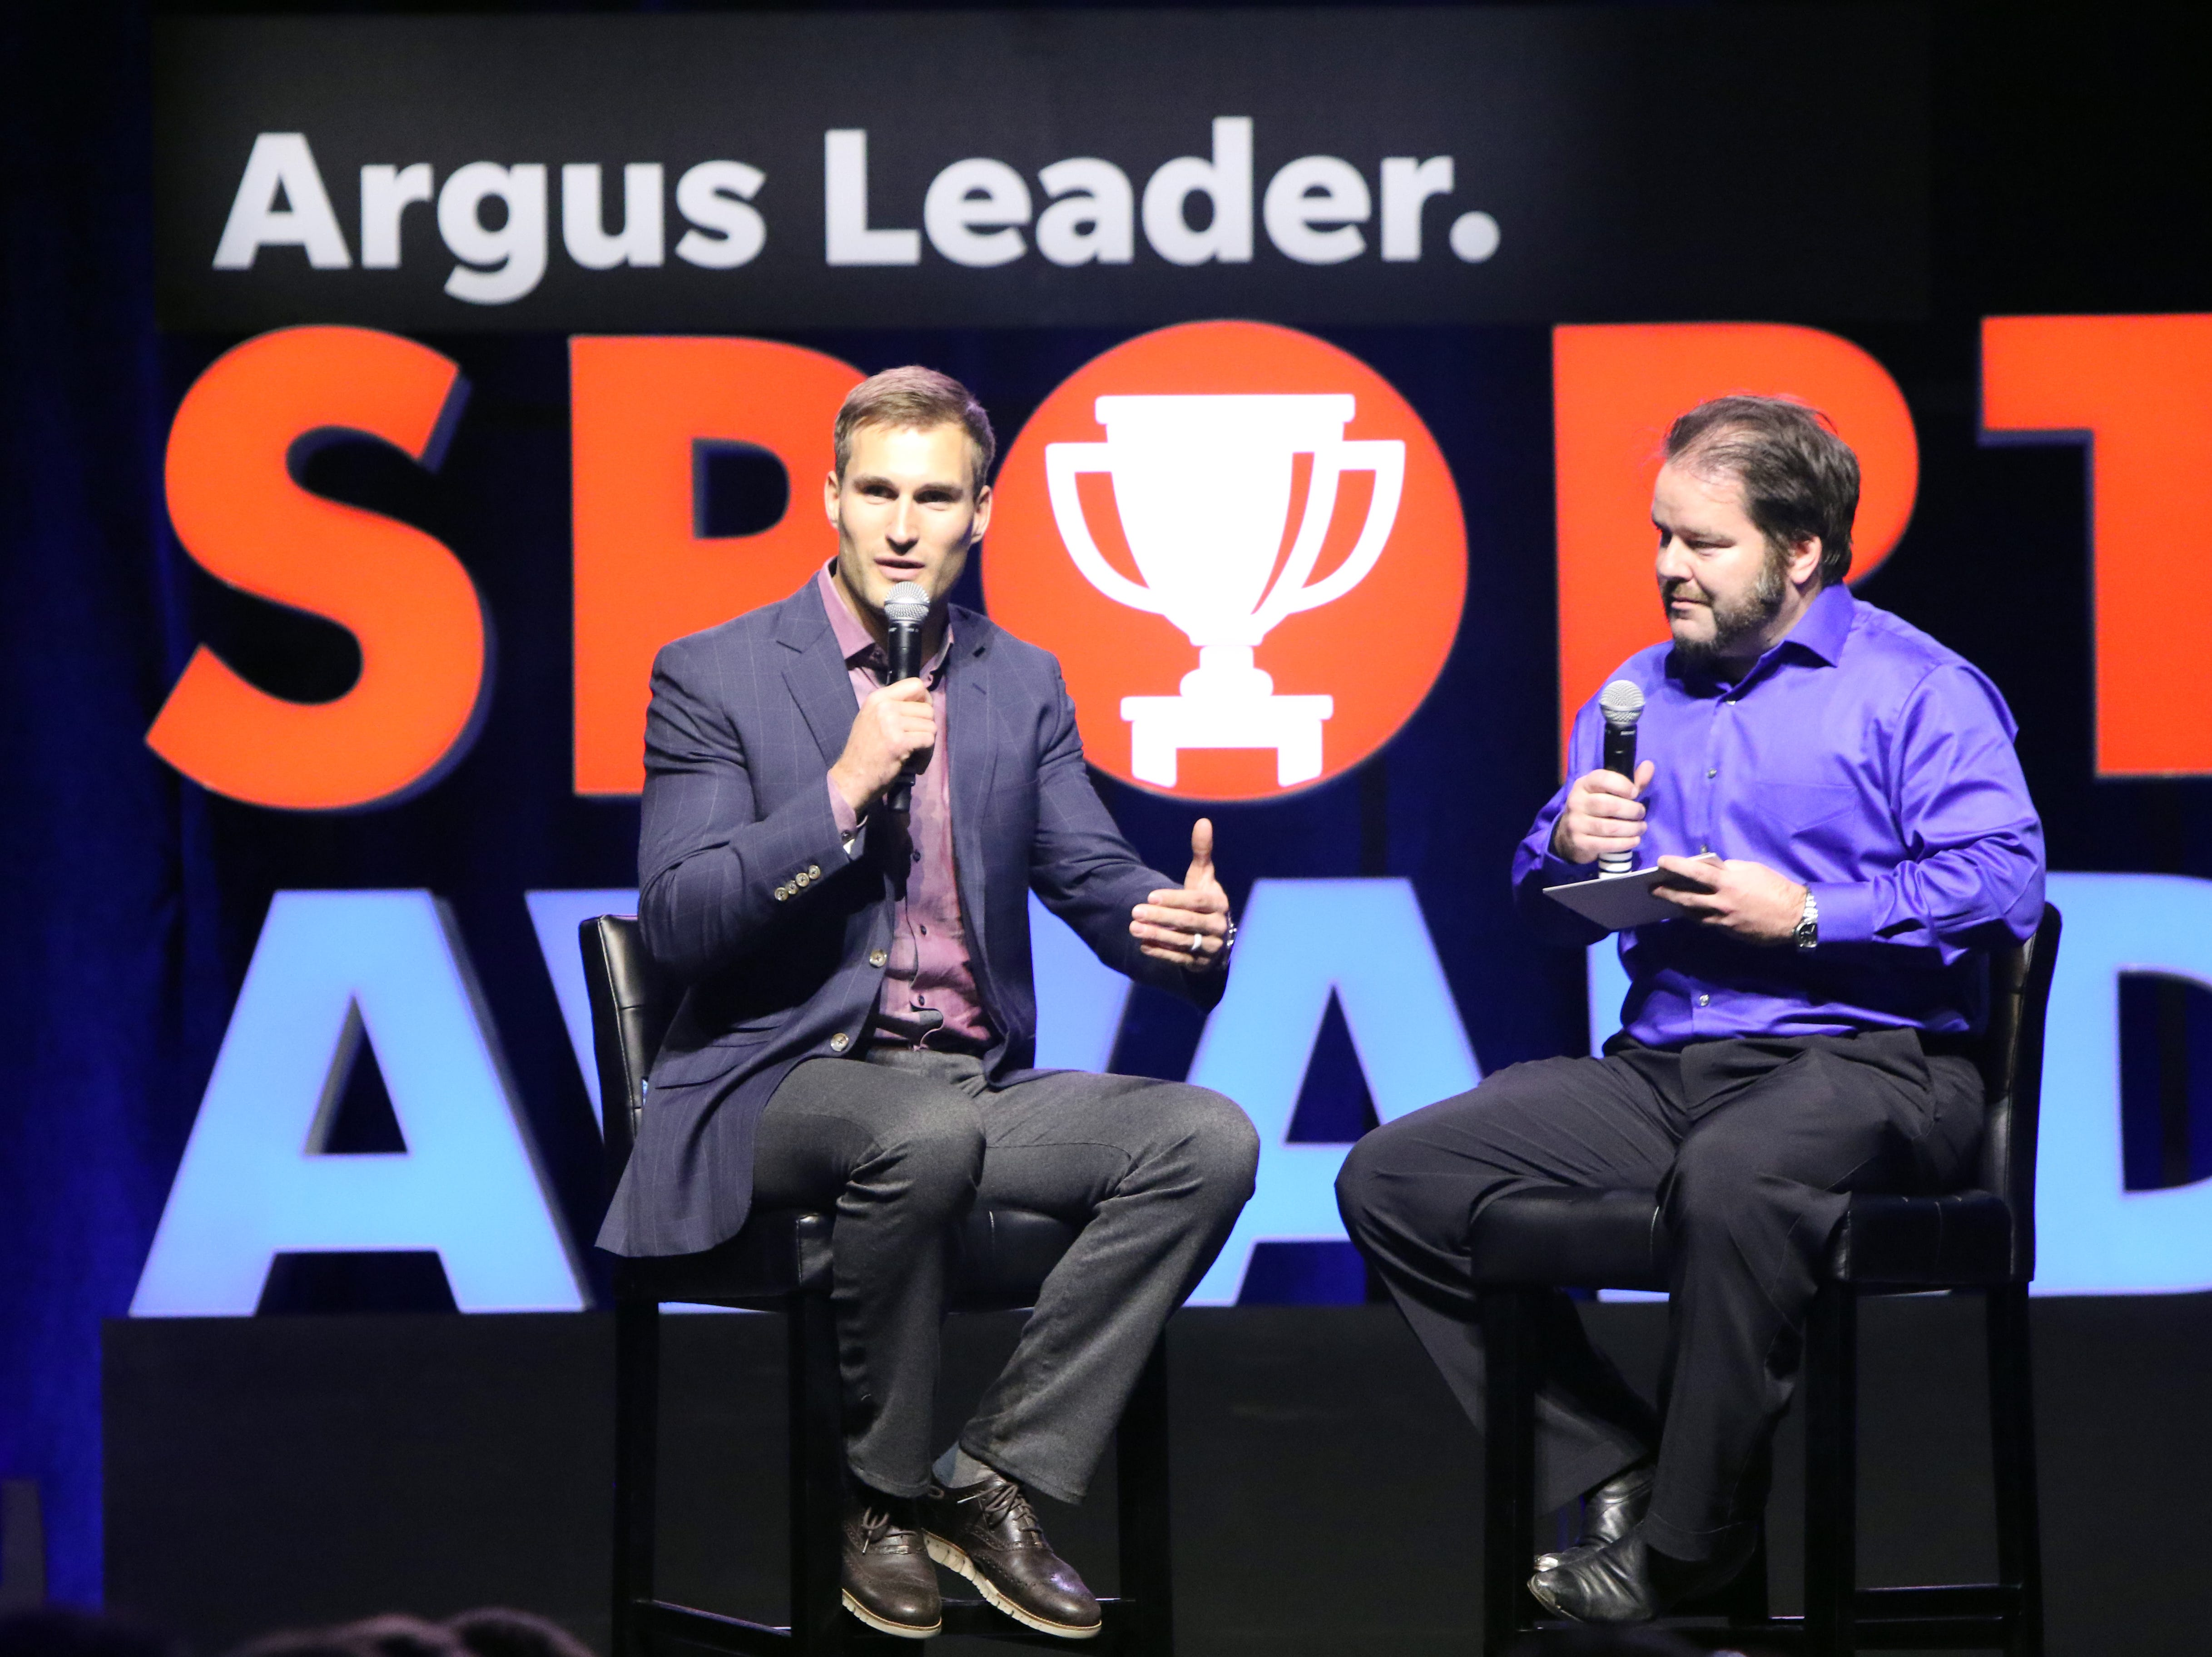 #ArgusSportsAwards: Complete coverage, photos and list of award winners